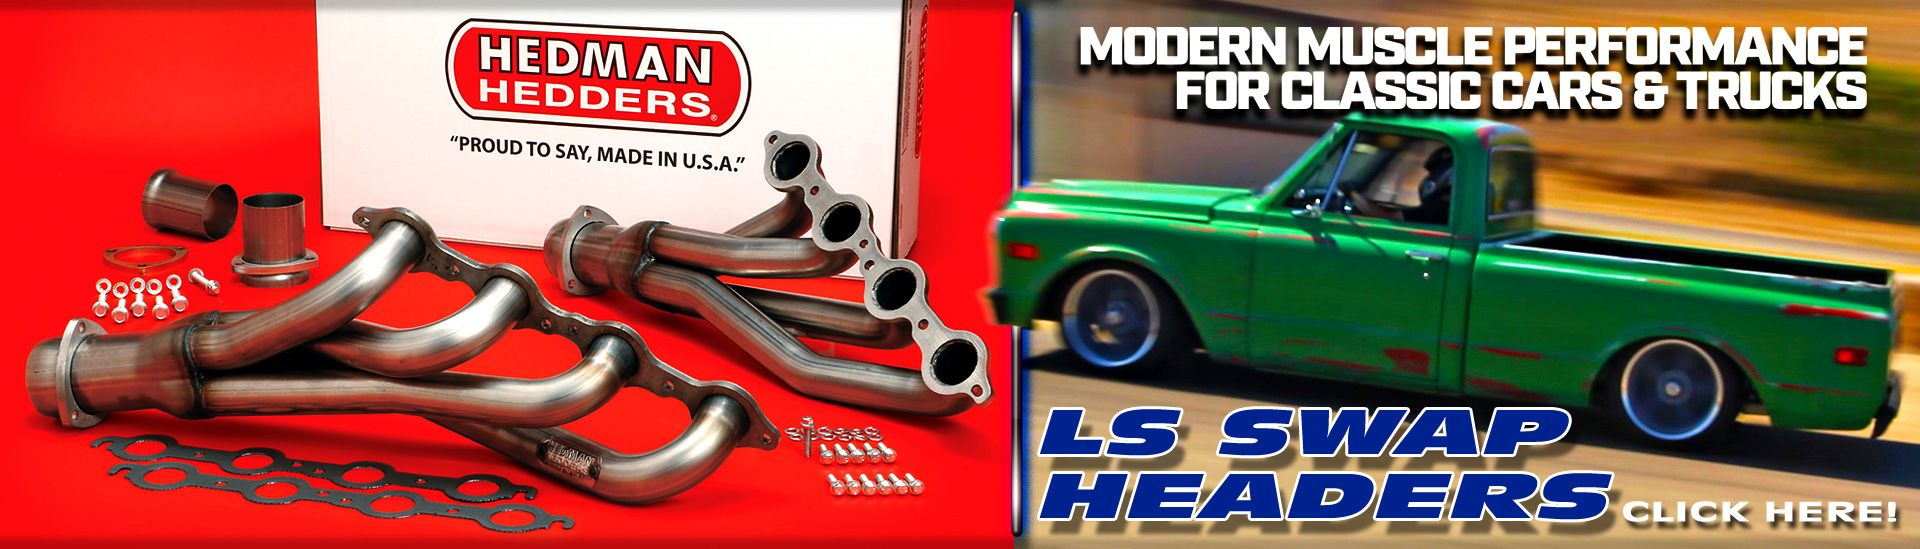 LS Engine Swap Headers For Trucks